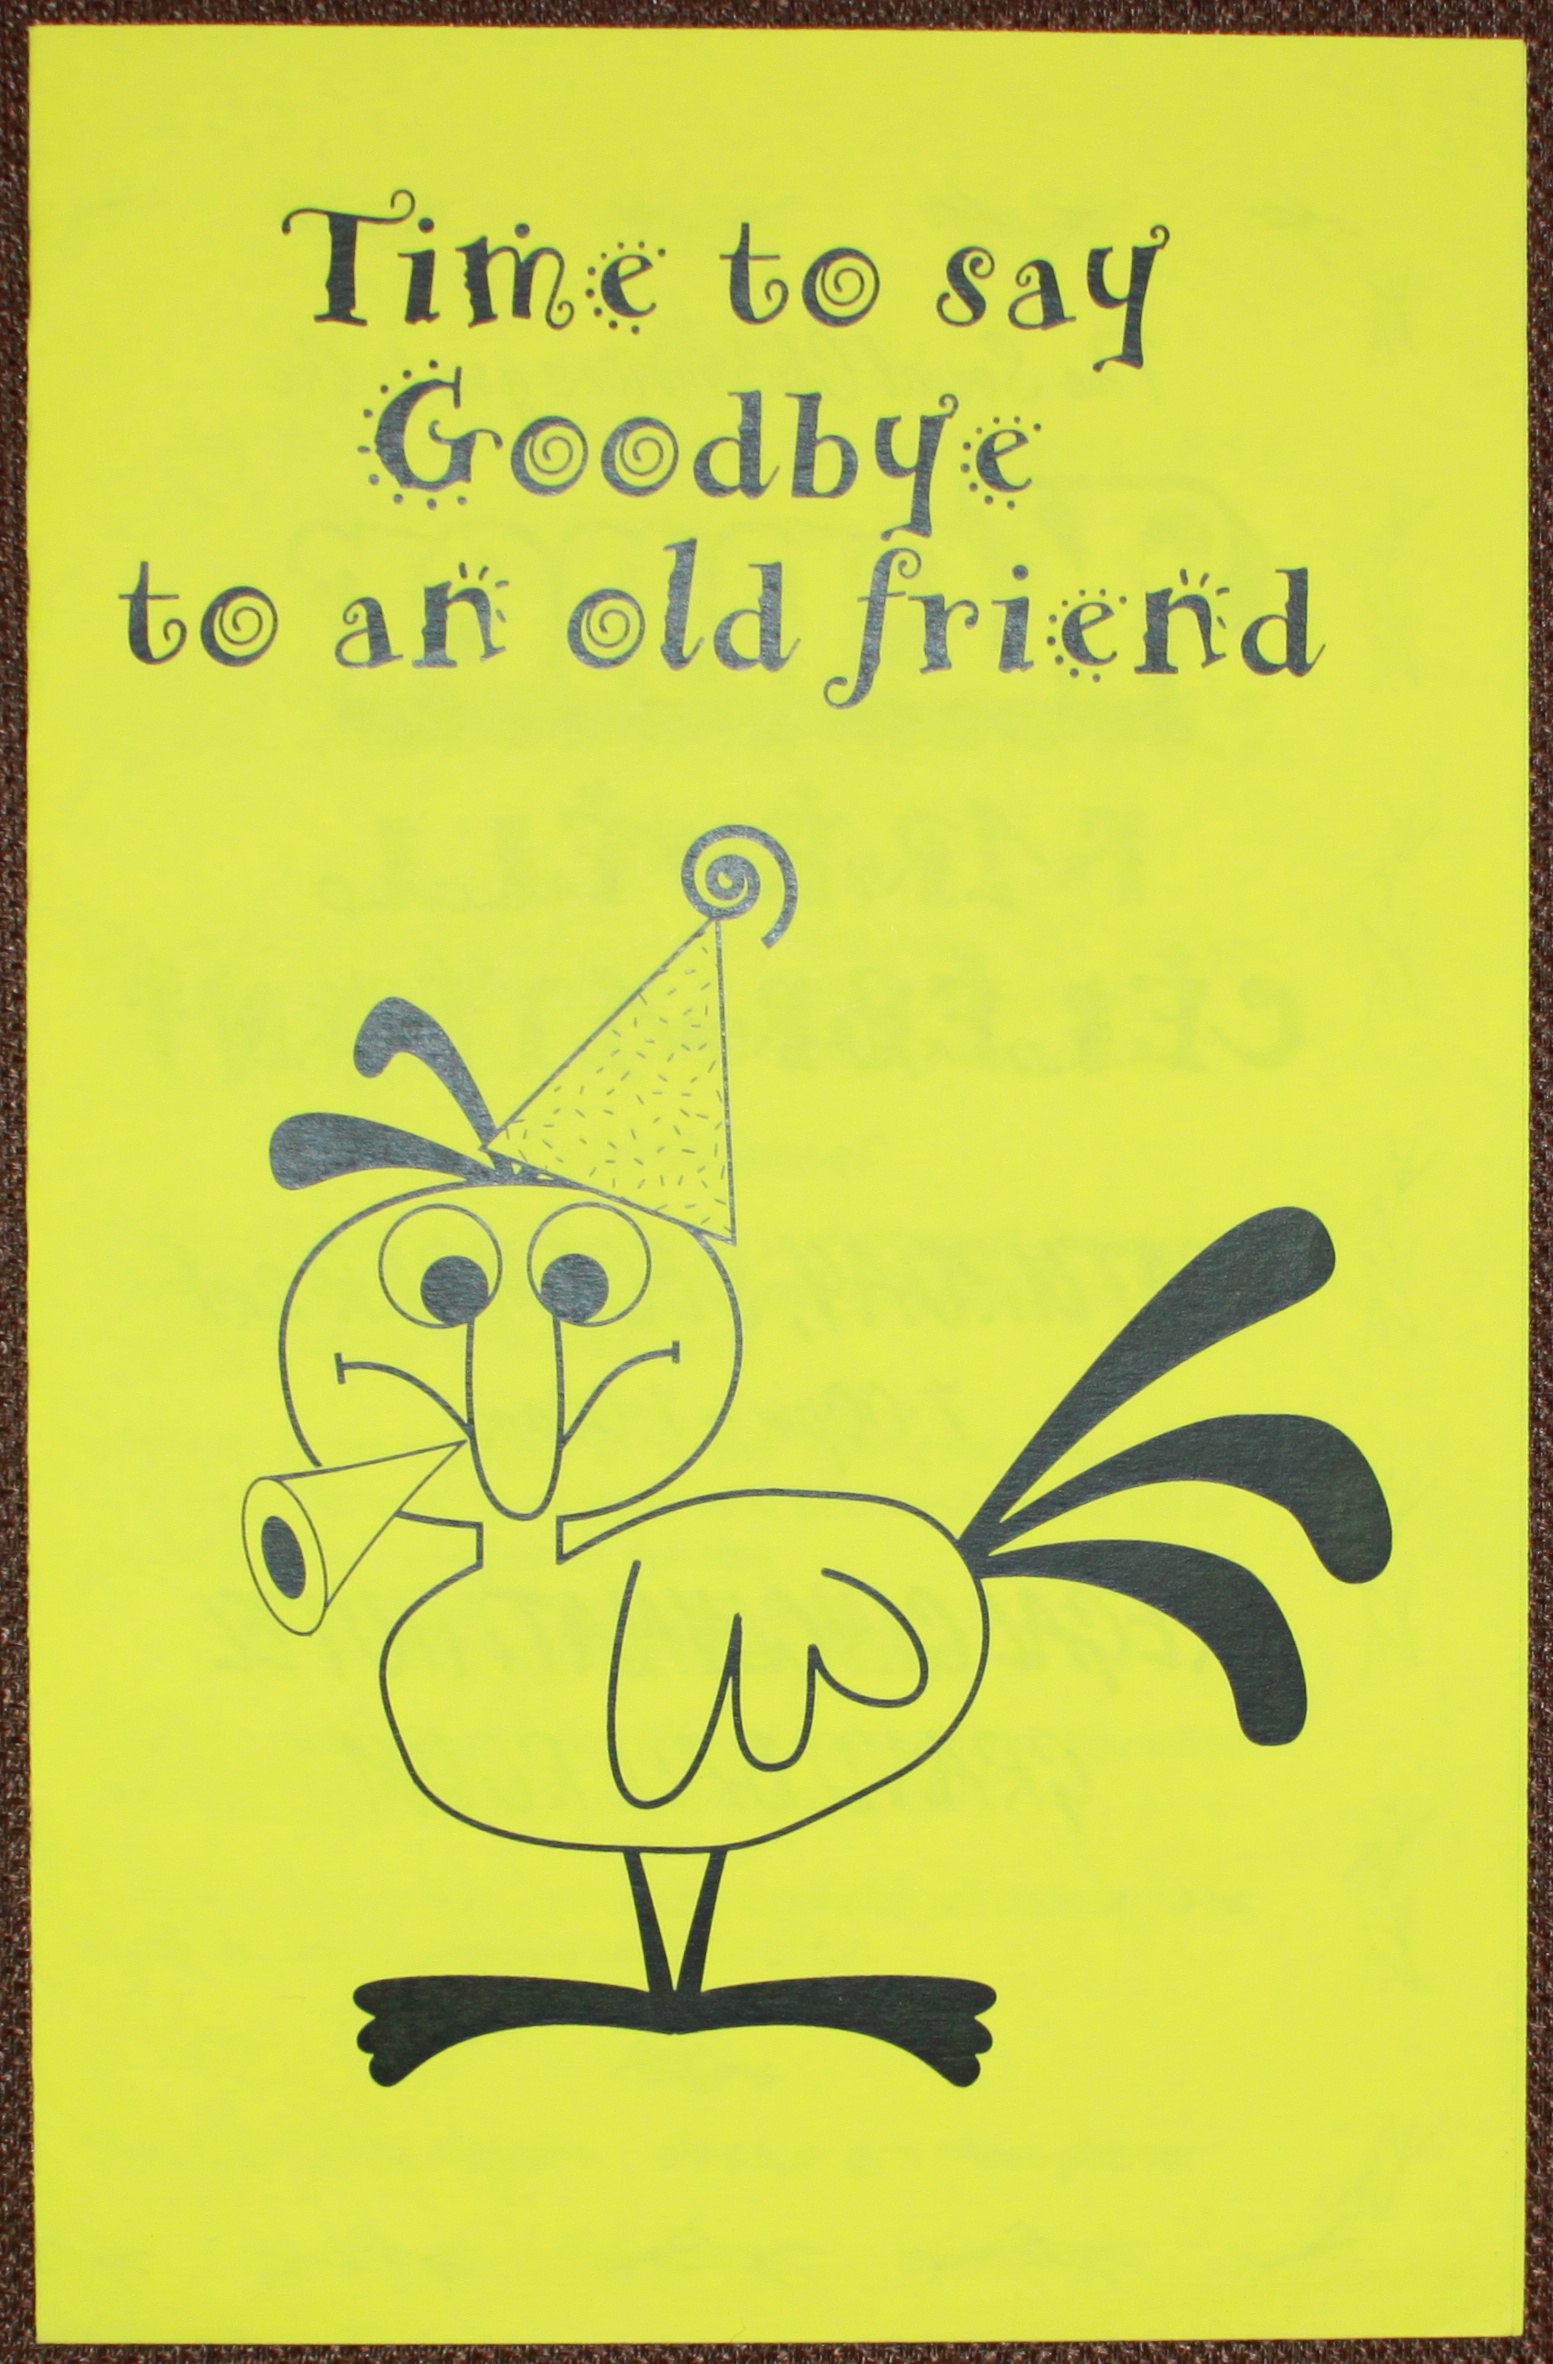 quotes farewell farewell party farewell invitation quotes